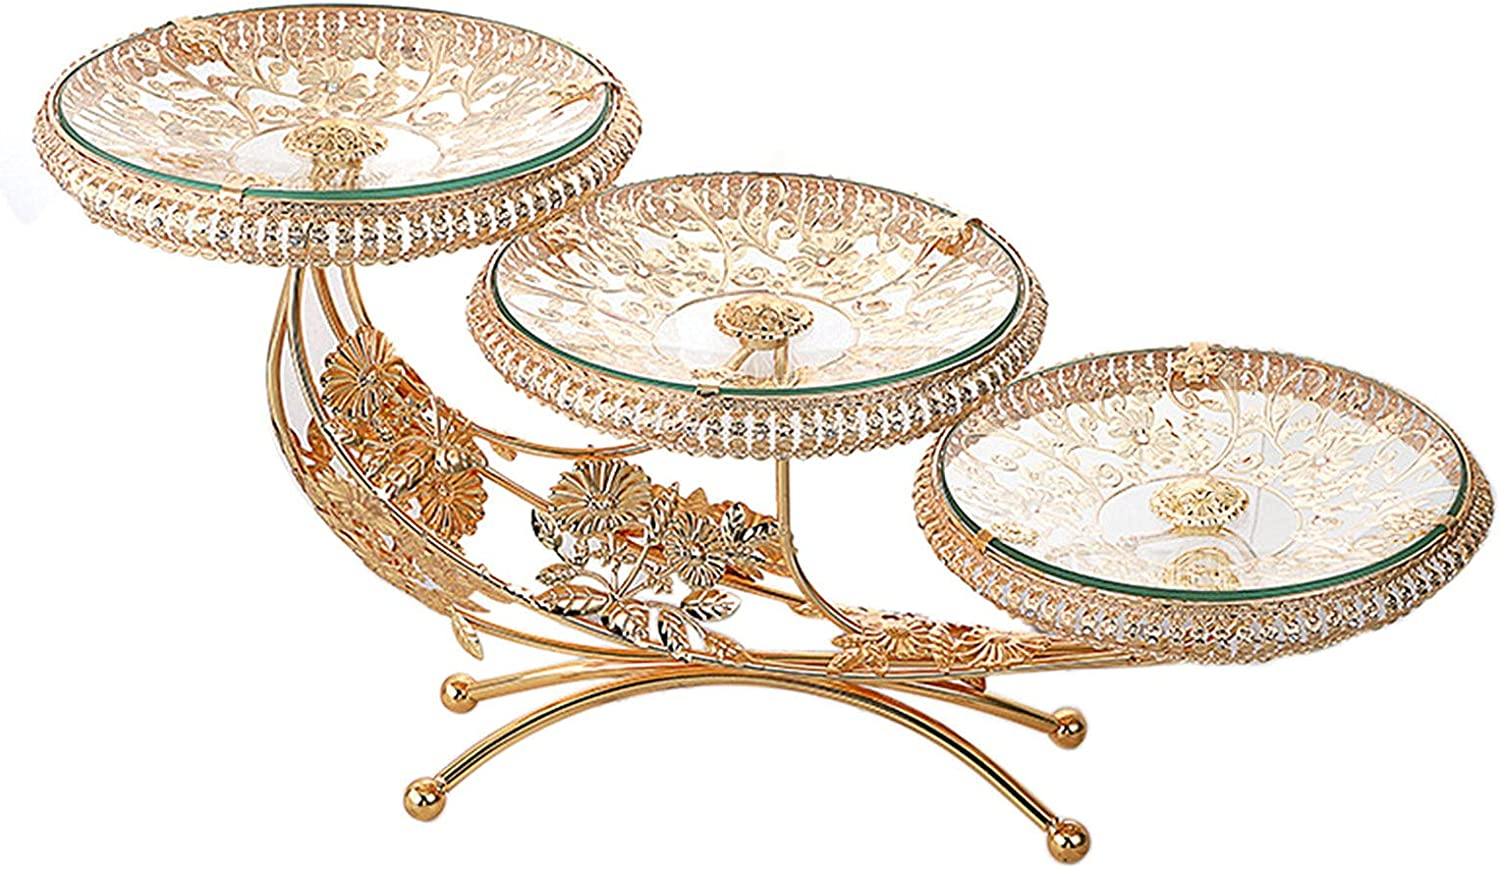 Luxury Golden Cake Stand Now on sale New Free Shipping with 3 Tempered Glass Eu Vintage Trays